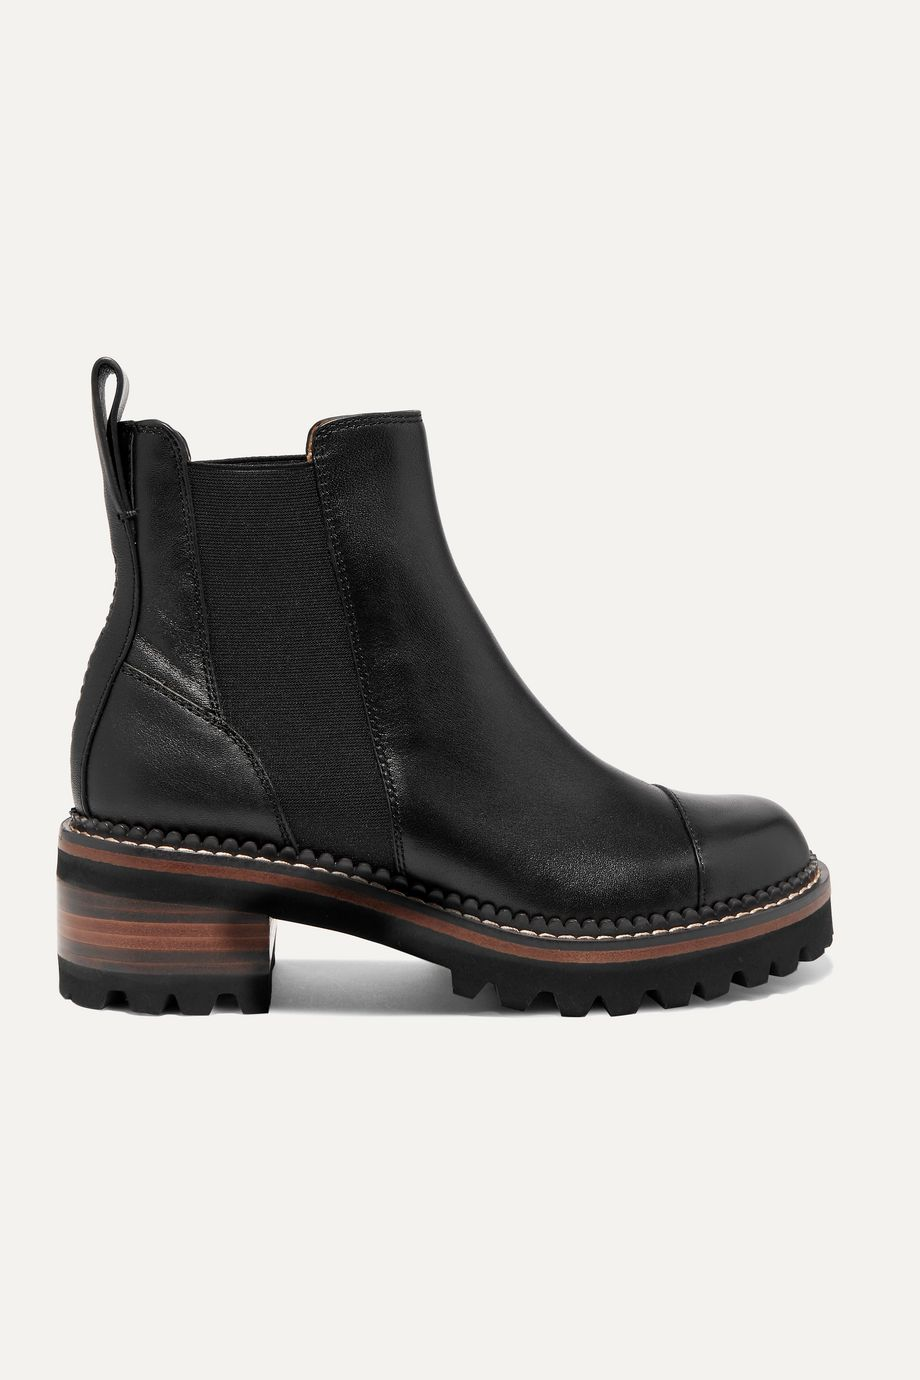 See By Chloé Leather Chelsea platform boots